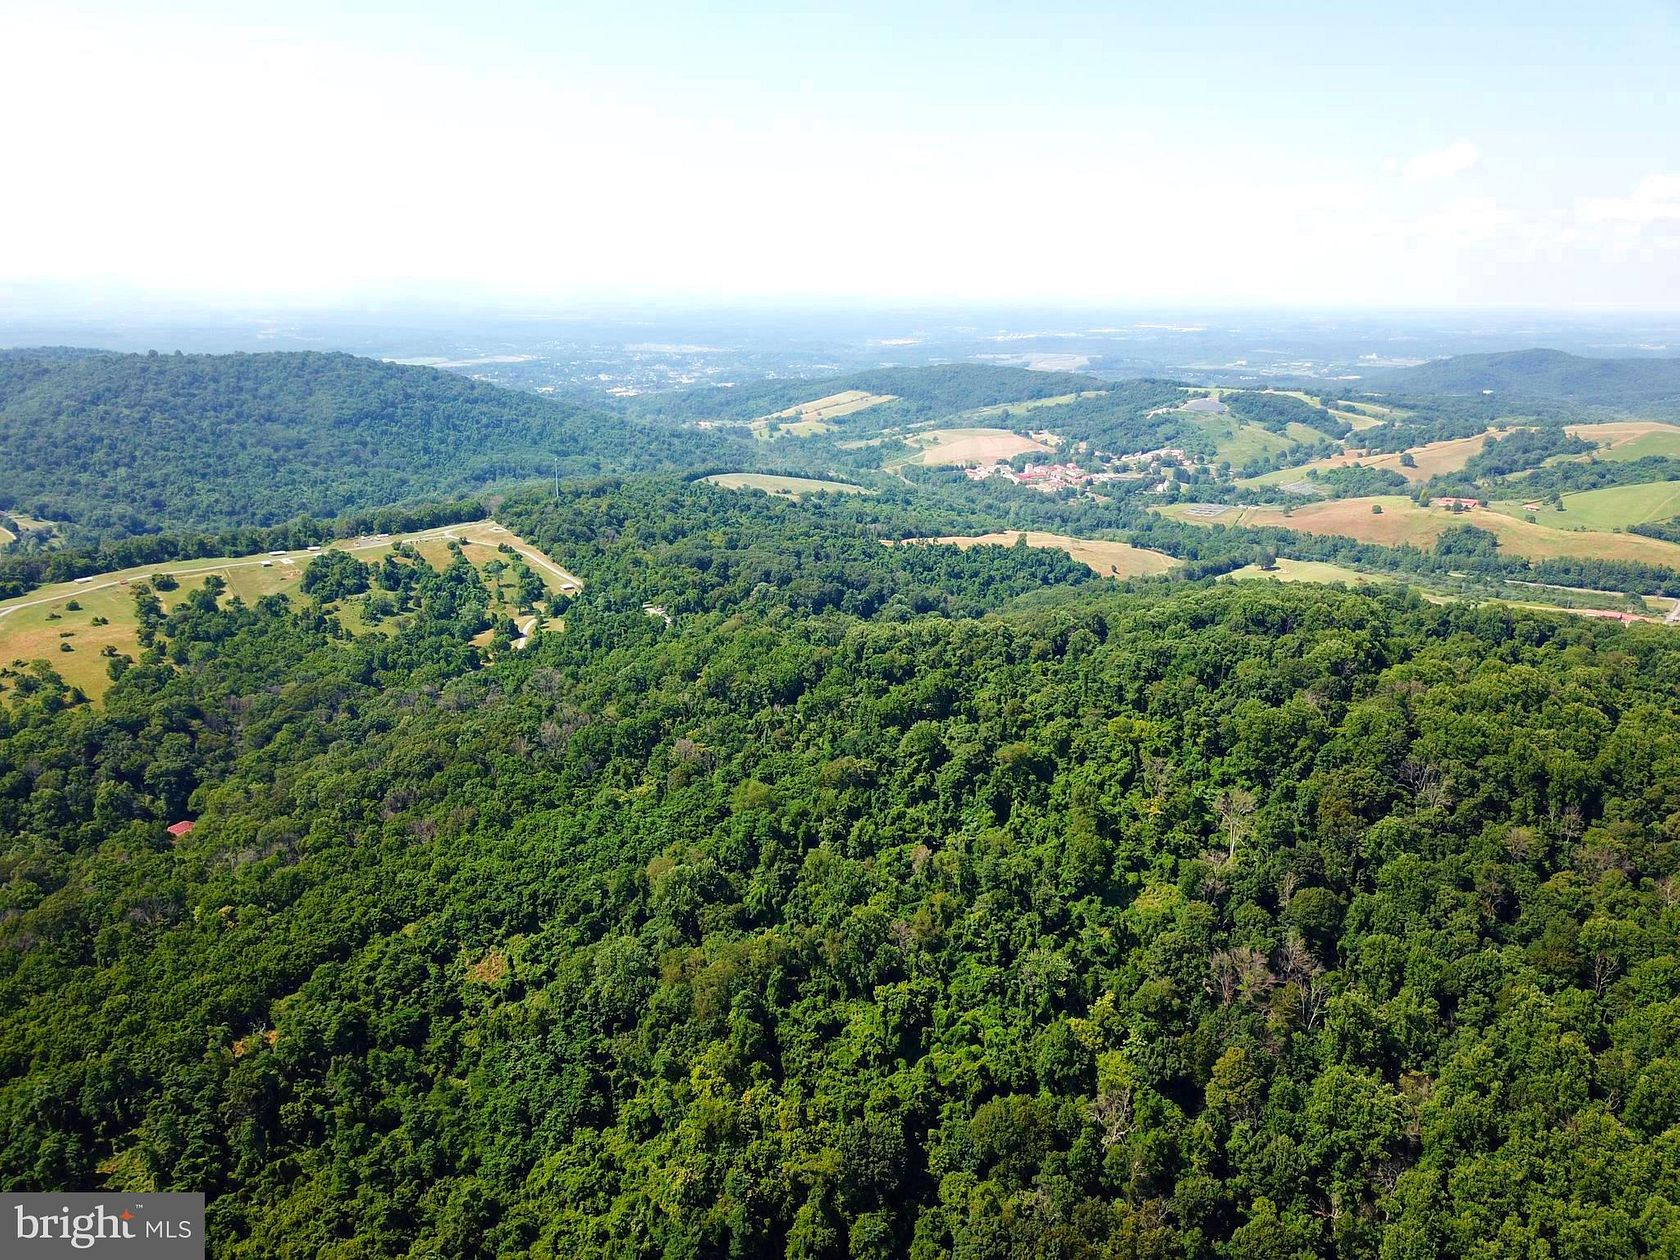 189 Acres of Agricultural Land for Sale in Front Royal, Virginia